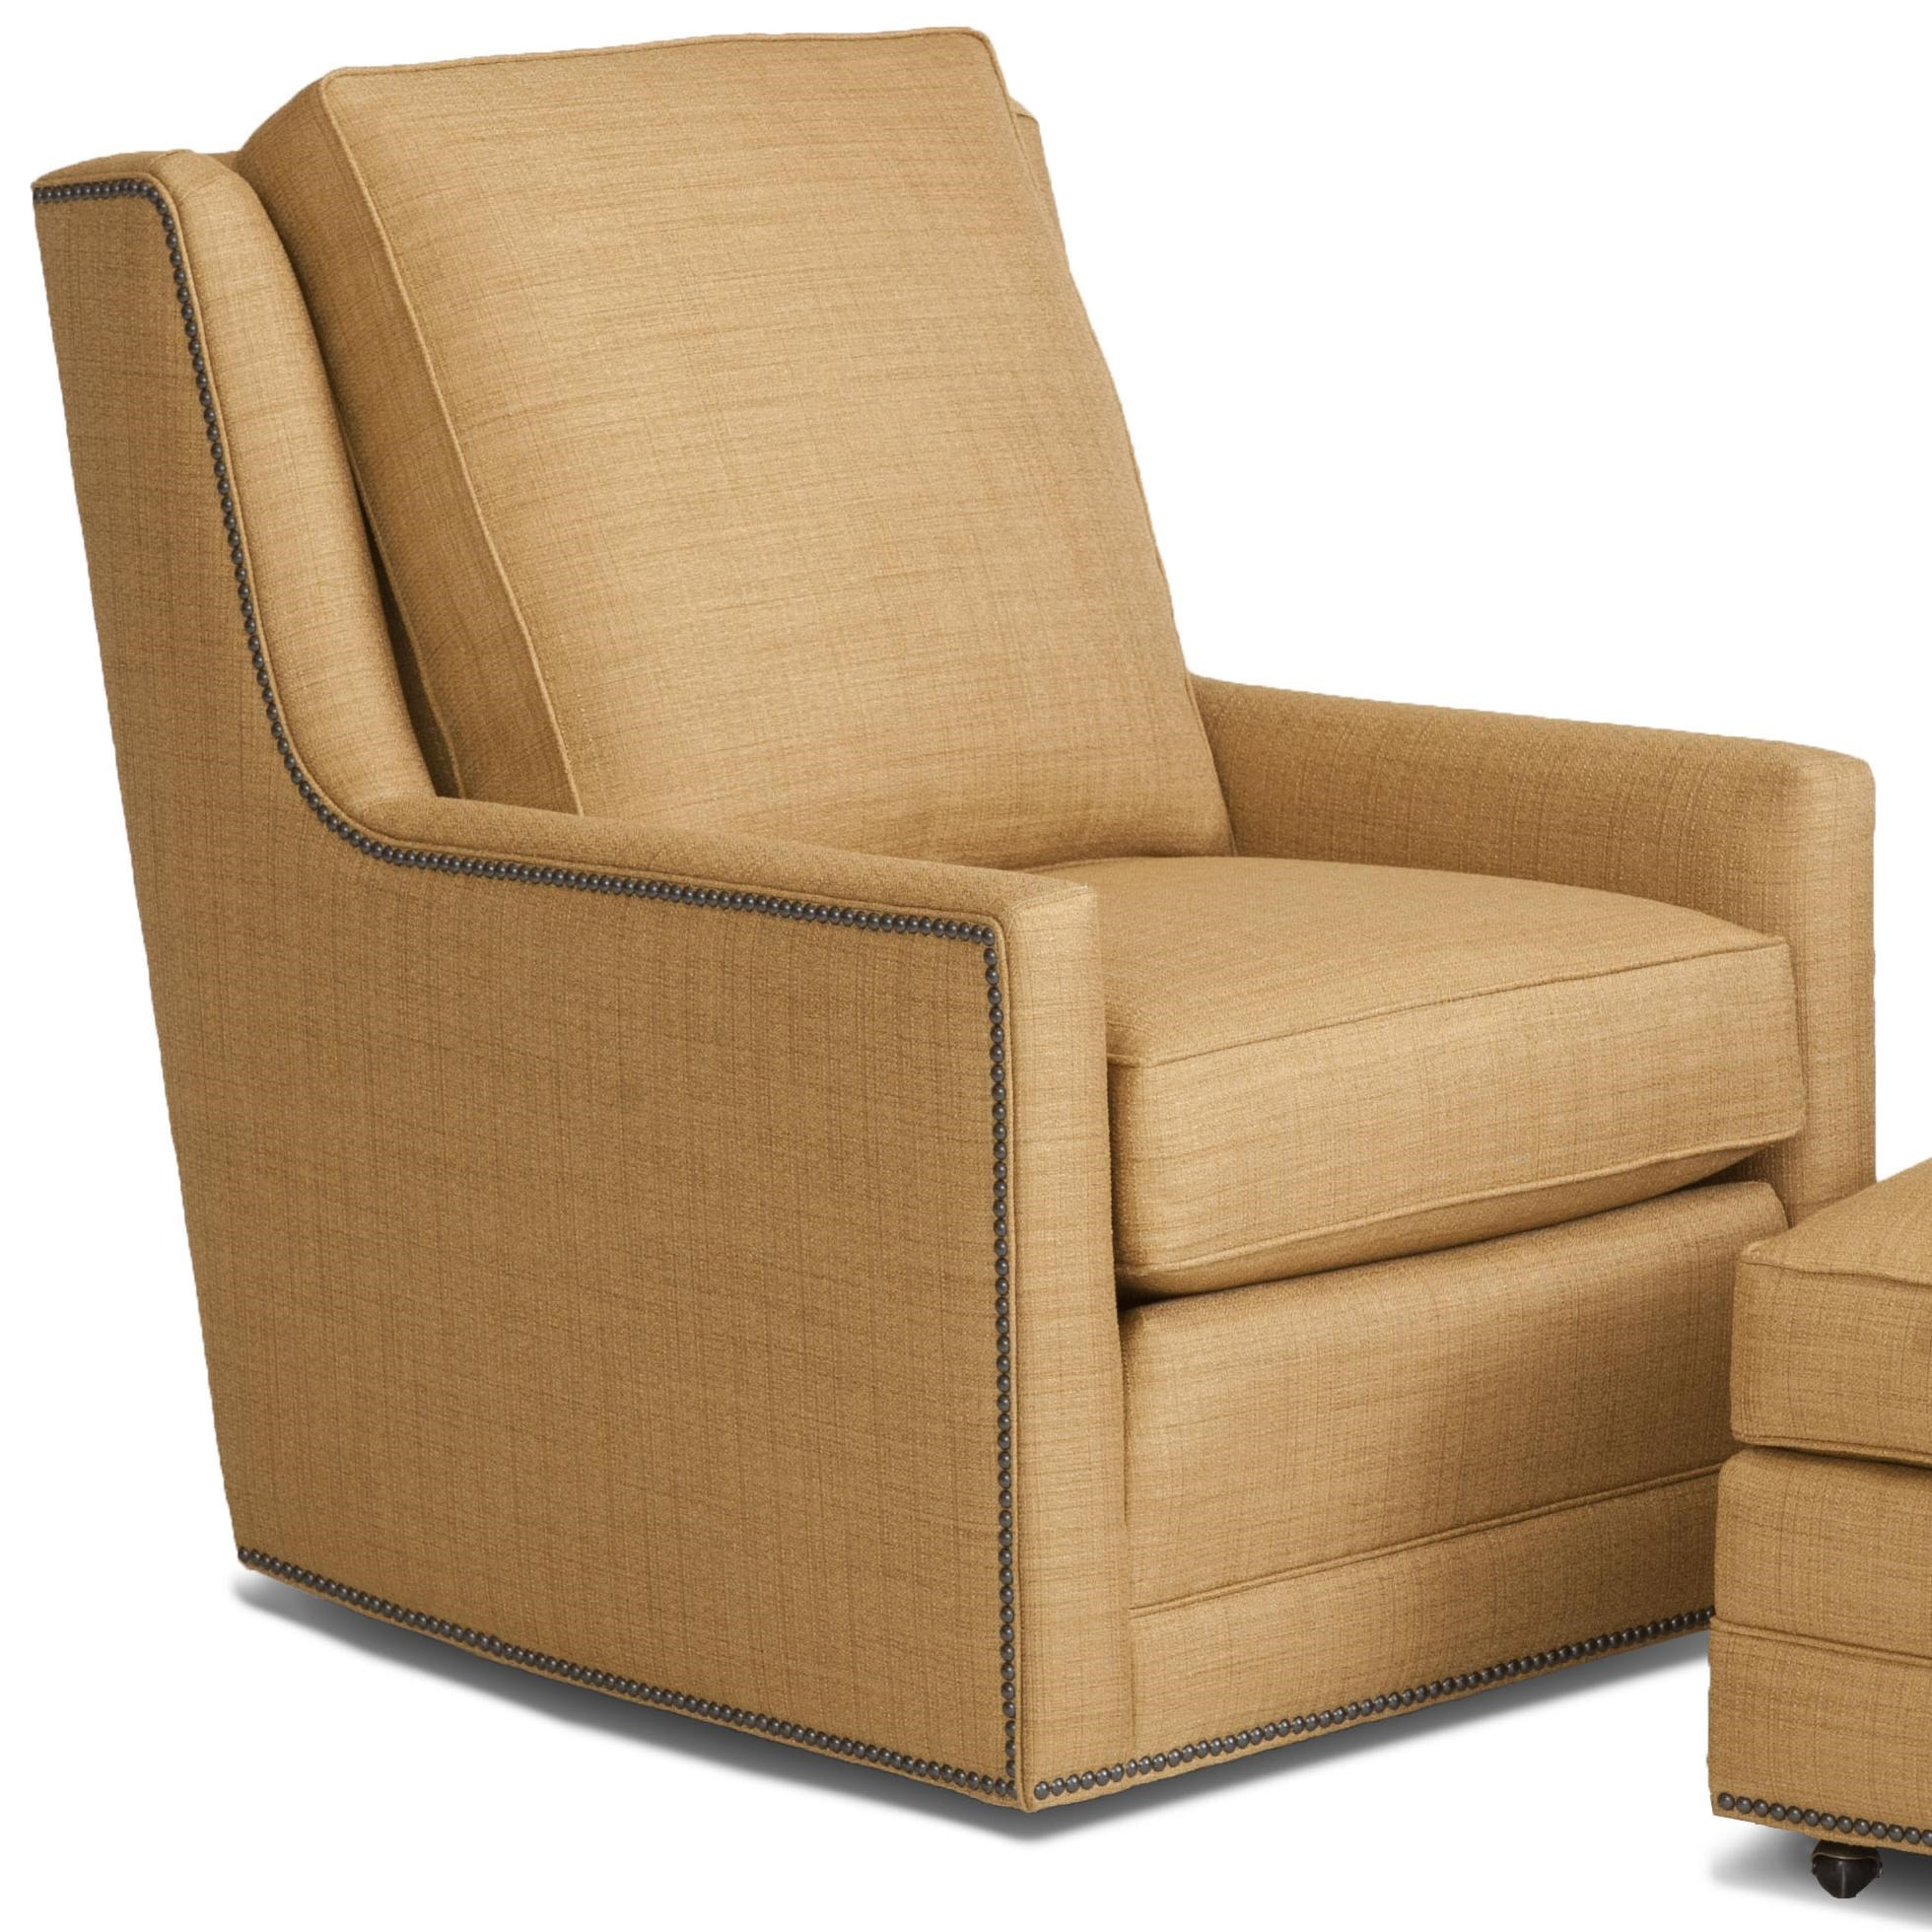 Smith Brothers Accent Chairs And Ottomans SBSwivel Chair ...